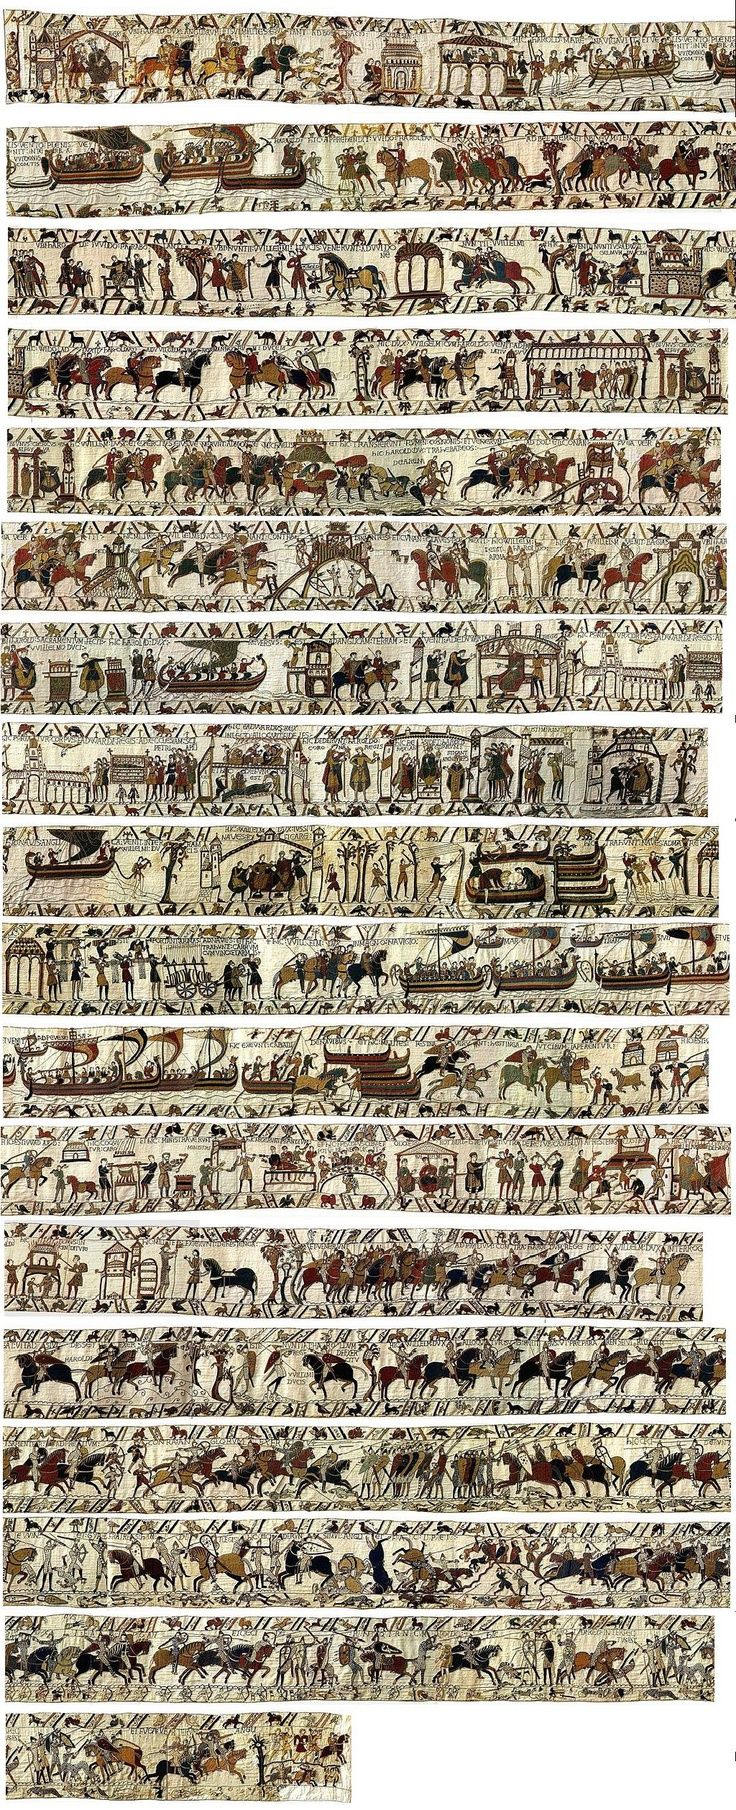 The Bayeux tapestry [Harold & the Battle of Hastings (AD 1066) from the Norman point of view] - was able to see it while traveling in Normandy, France. The colors are still fantastic!